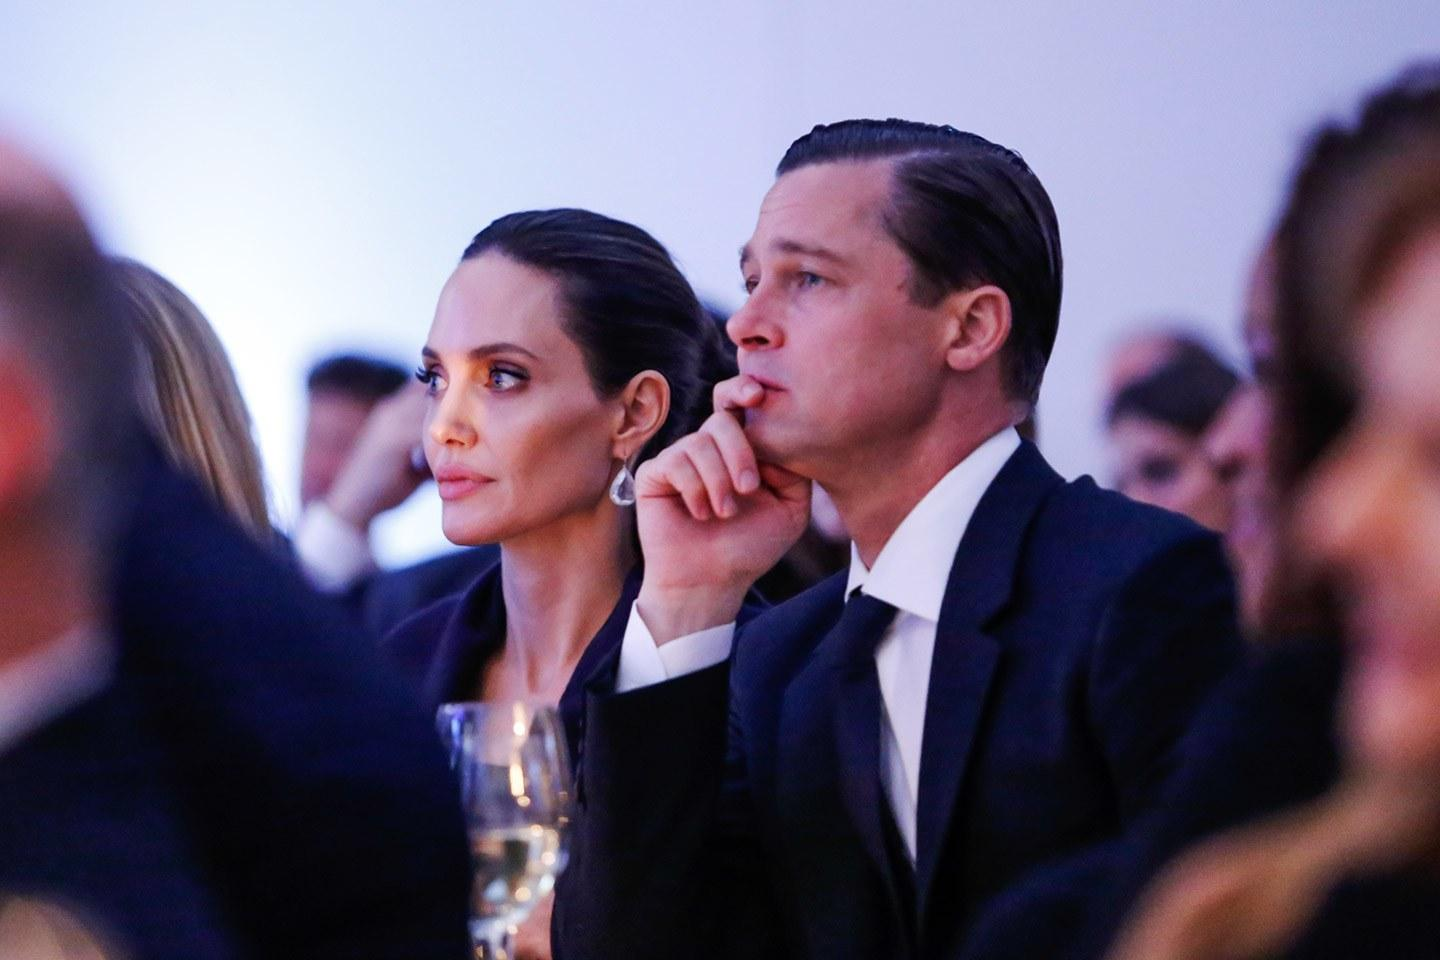 Brad Pitt Saddened By Angelina Jolie's Outings With The Kids - Reportedly Thinks She Uses Them To Look Like A Good Mother In The Media!